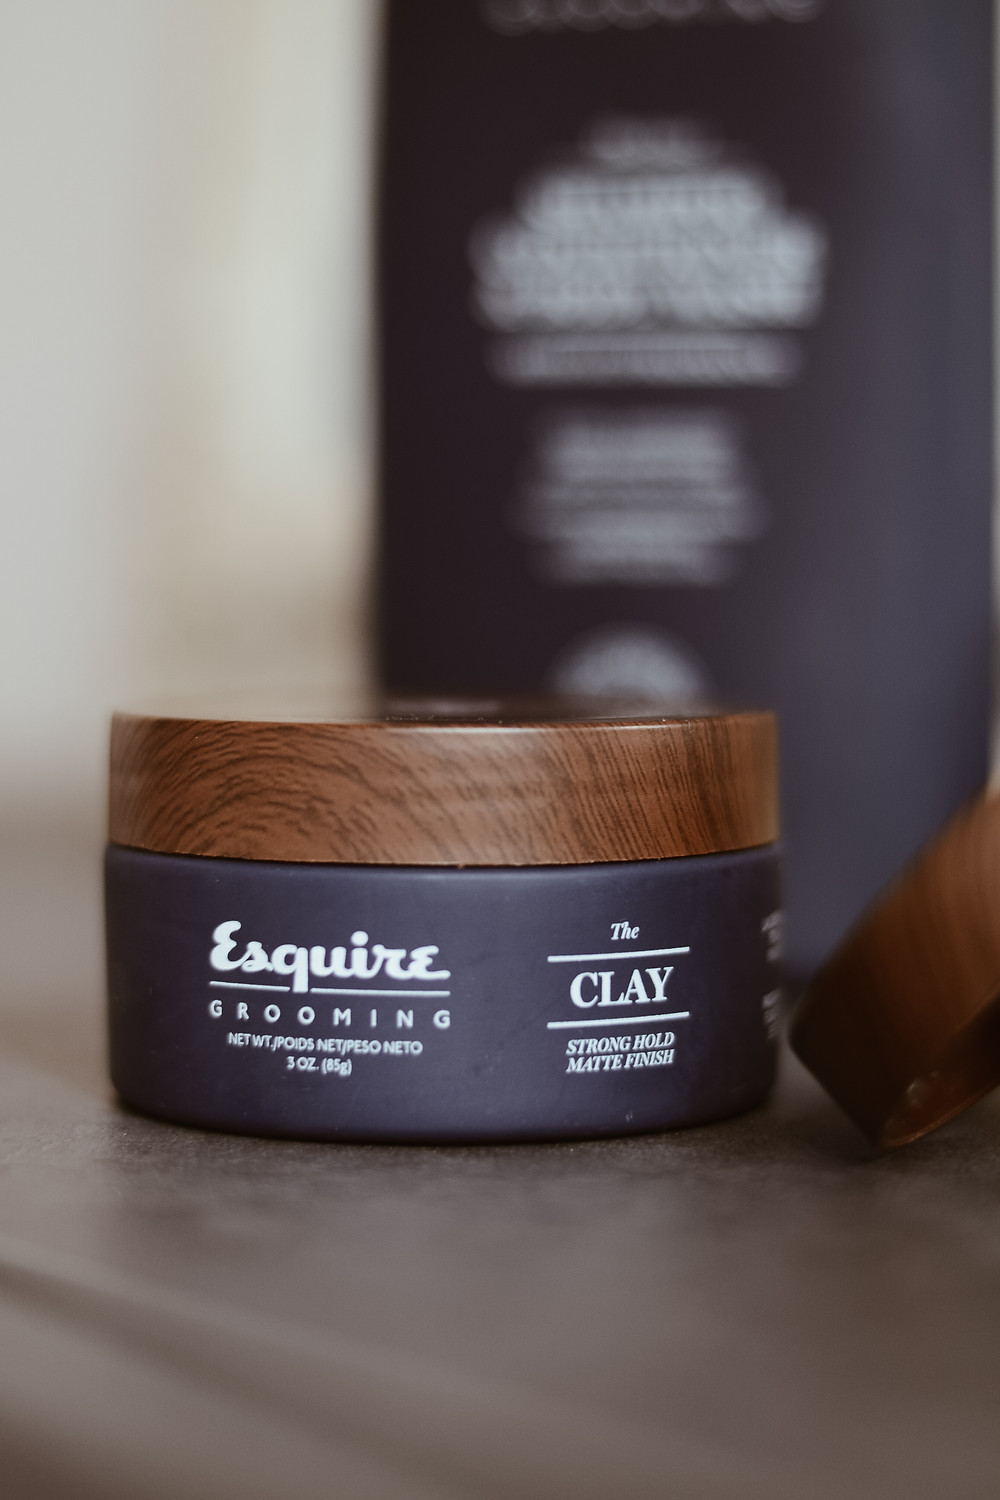 Esquire Grooming Mencare - The Clay